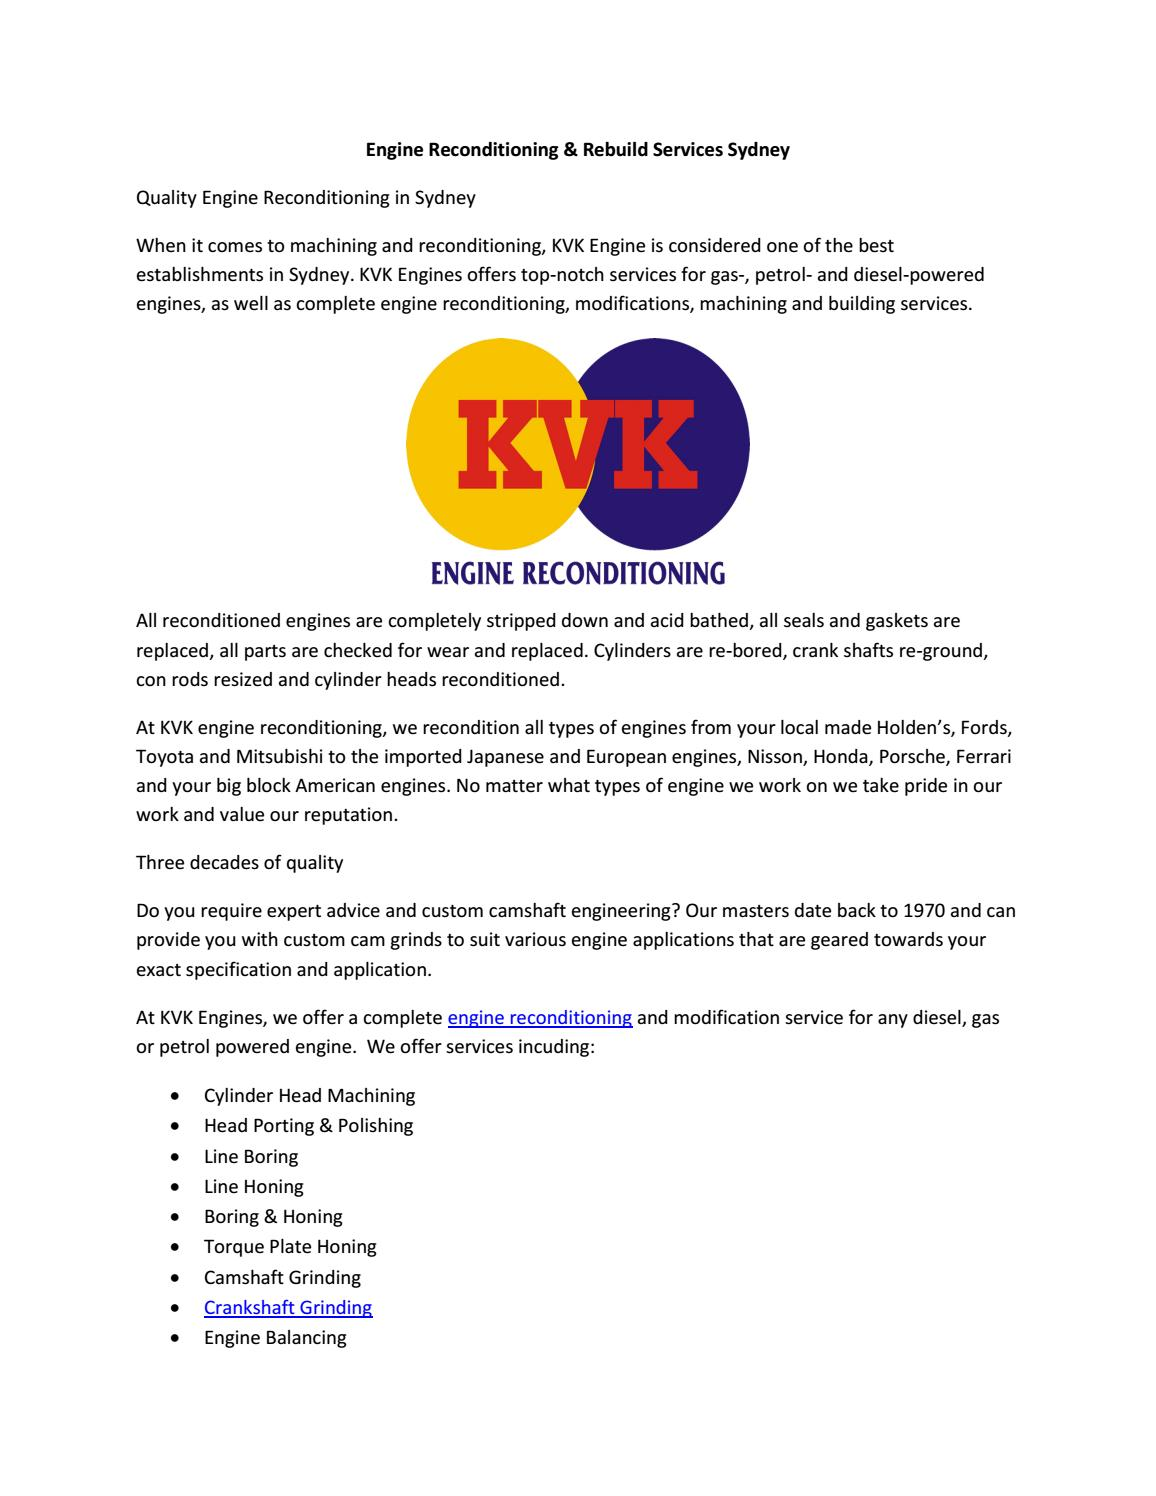 Engine reconditioning rebuild services sydney by Kvk Engine